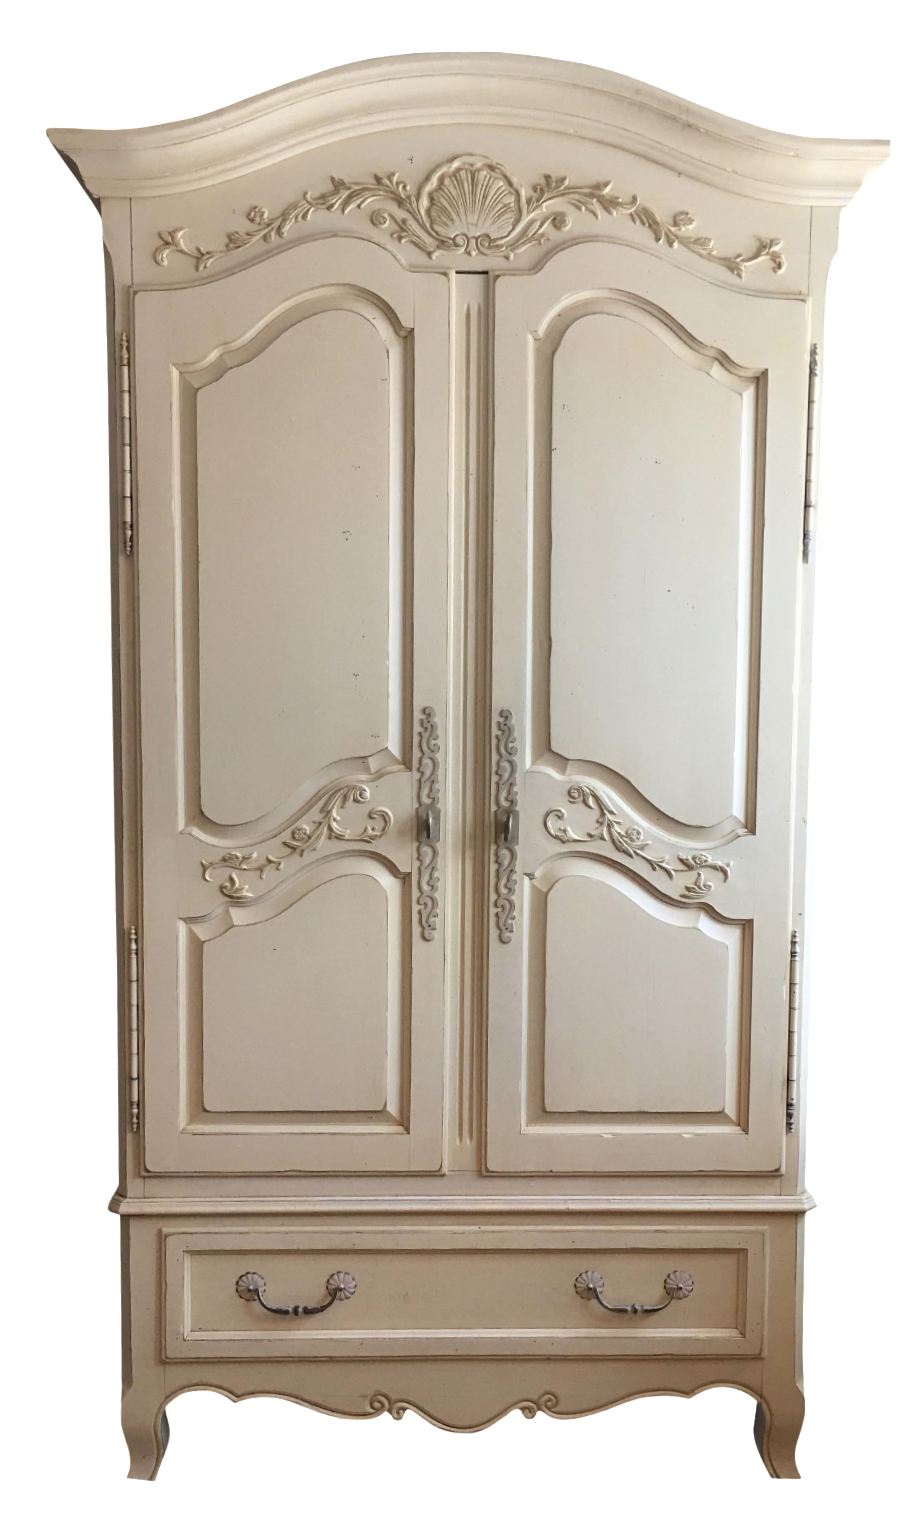 Ethan allen country french armoire chairish for Ethan allen french country bedroom furniture